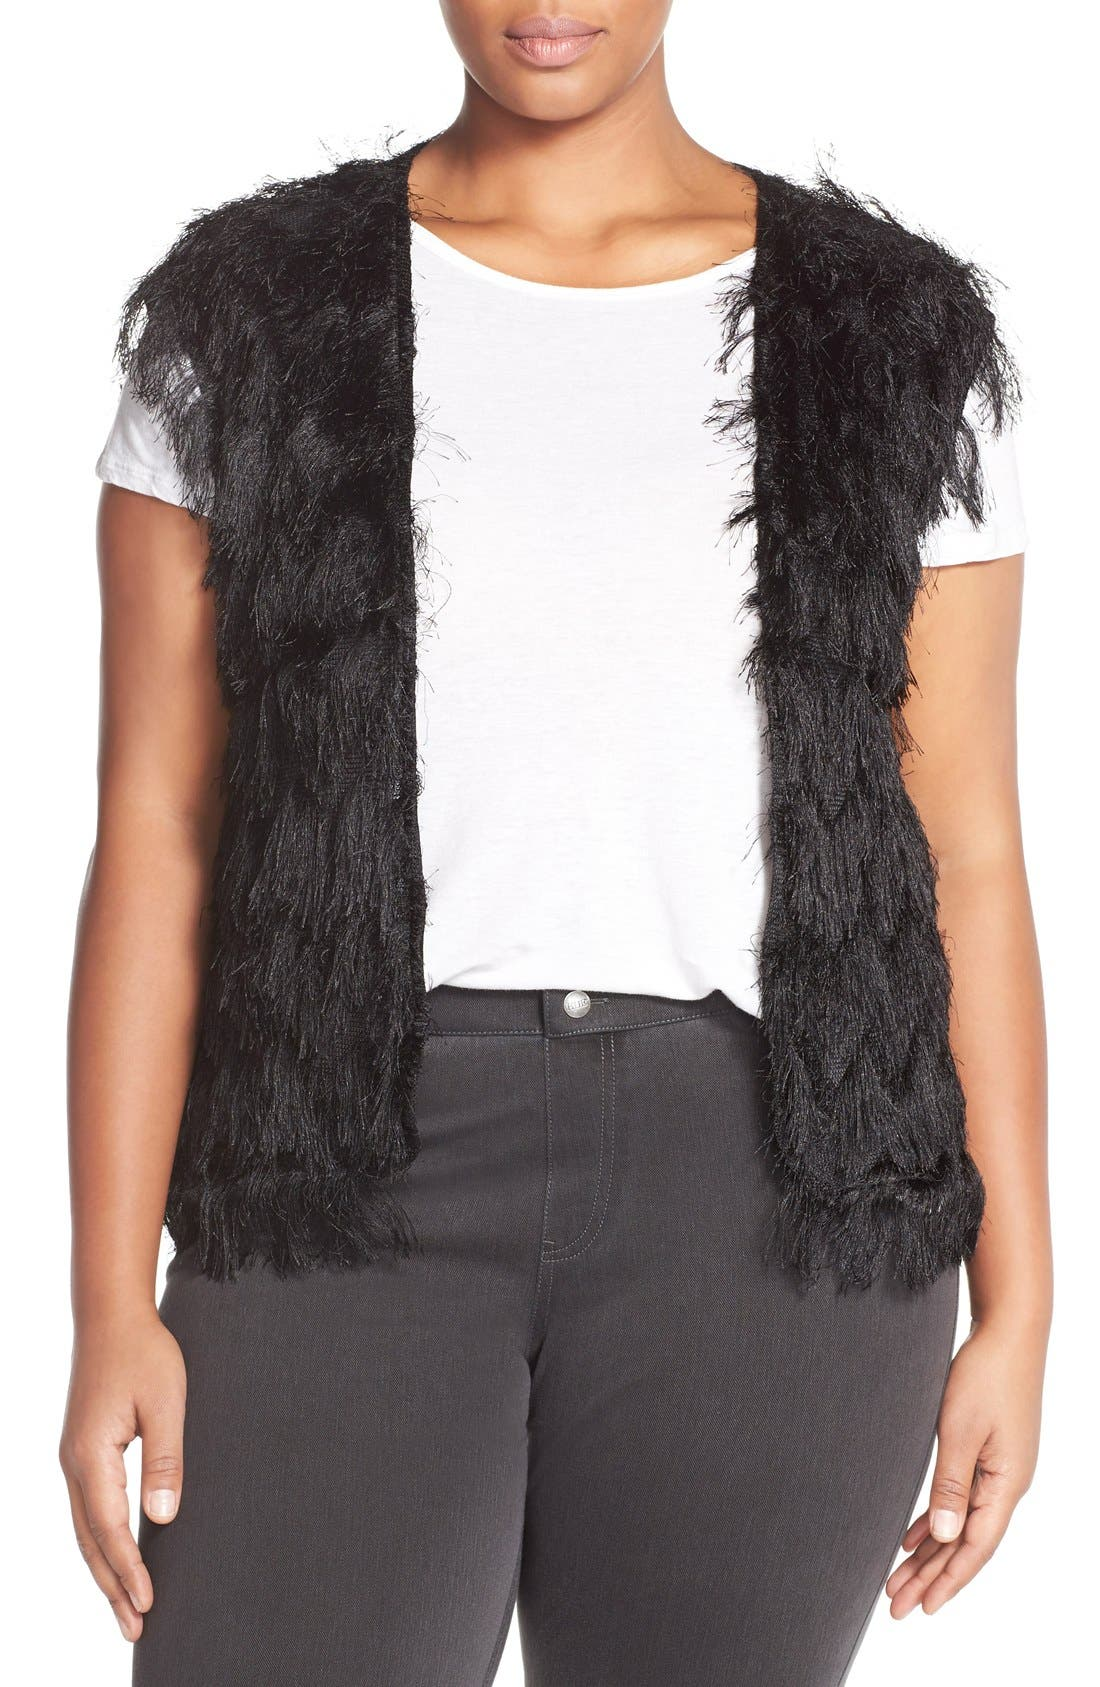 CITY CHIC, 'Disco Fringe' Vest, Main thumbnail 1, color, 001